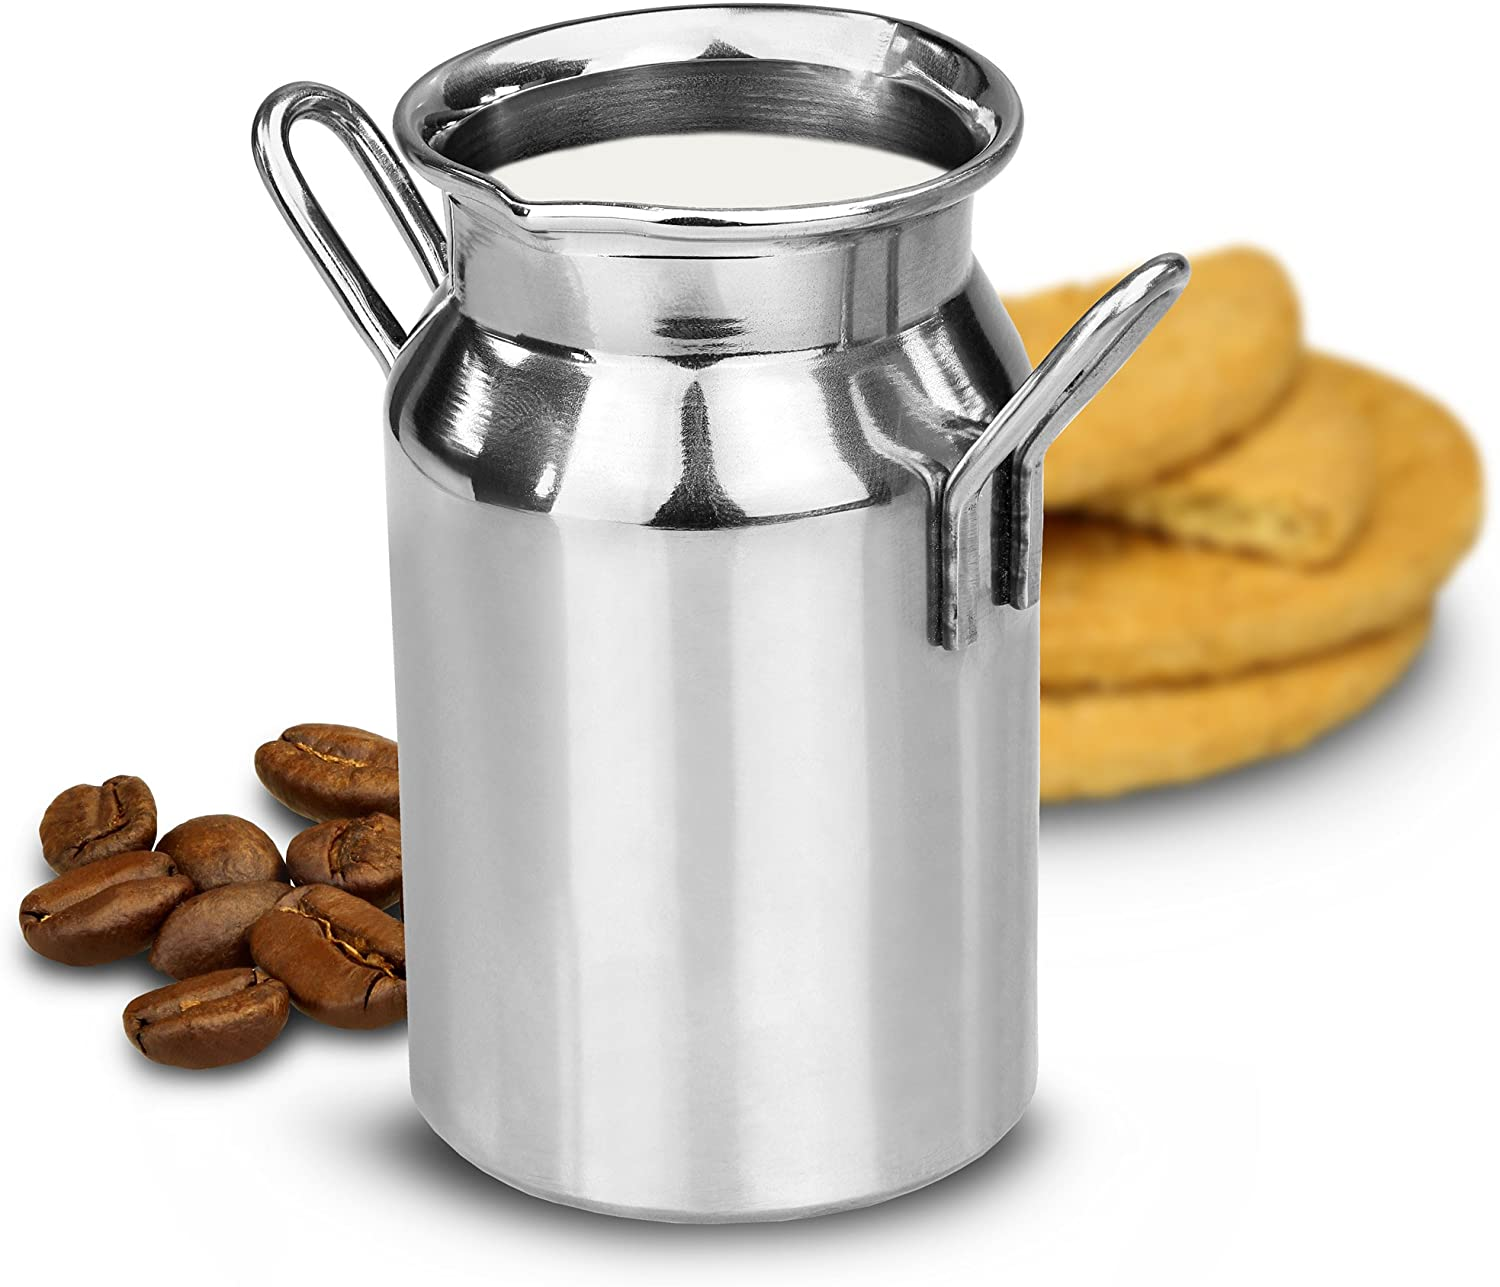 Stainless Steel Mini Milk Churn - Novelty Milk Jug, Cream Tots